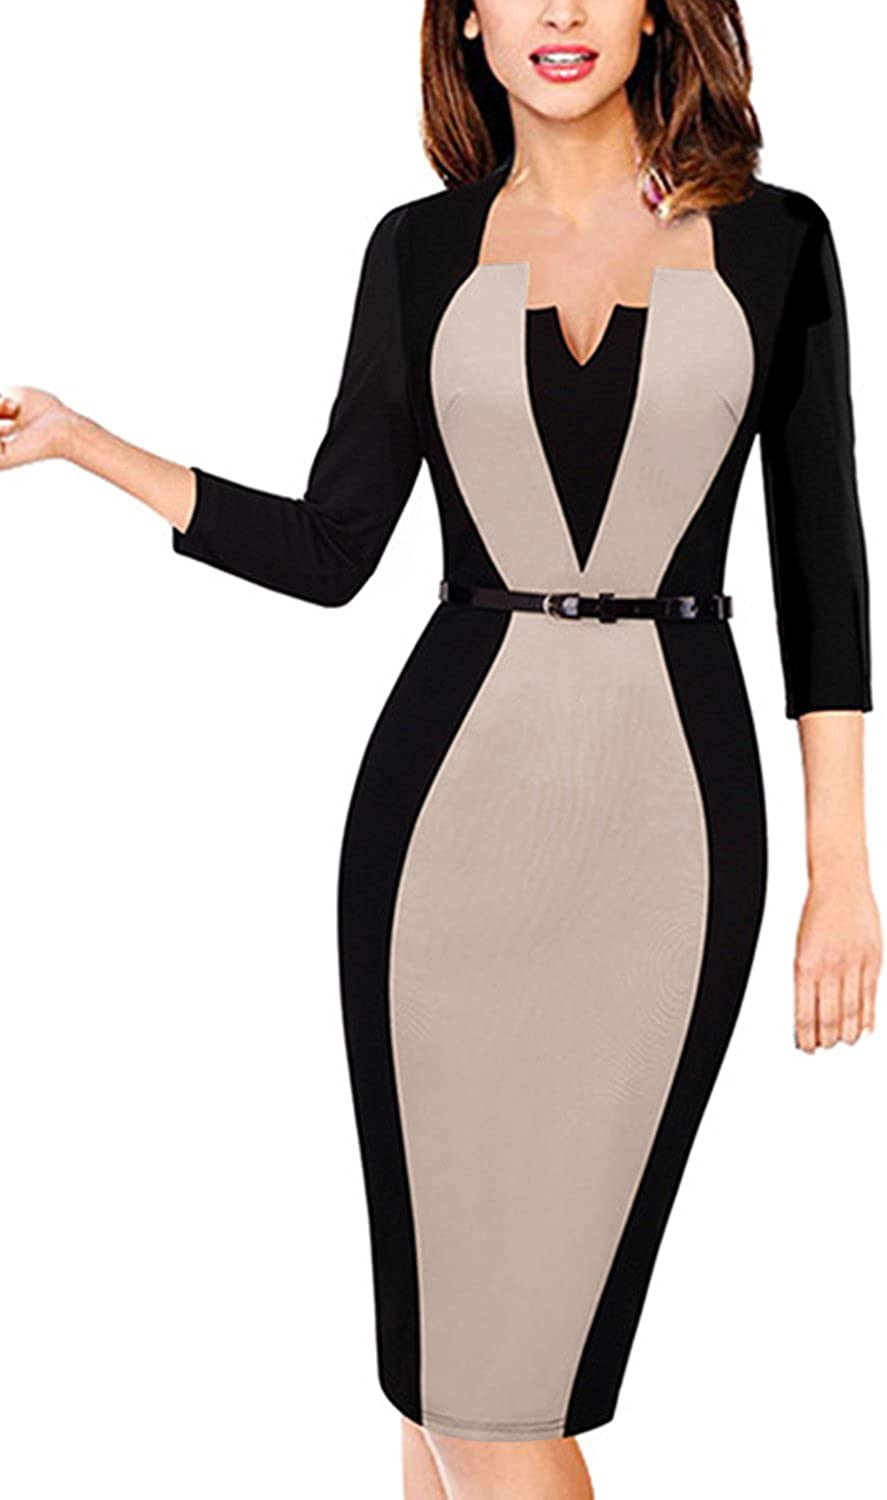 MisShow Damen V Ausschnitt Business Kleid Partykleid Pencil Etuikleider  Strecken Tunika Gr.S-15XL